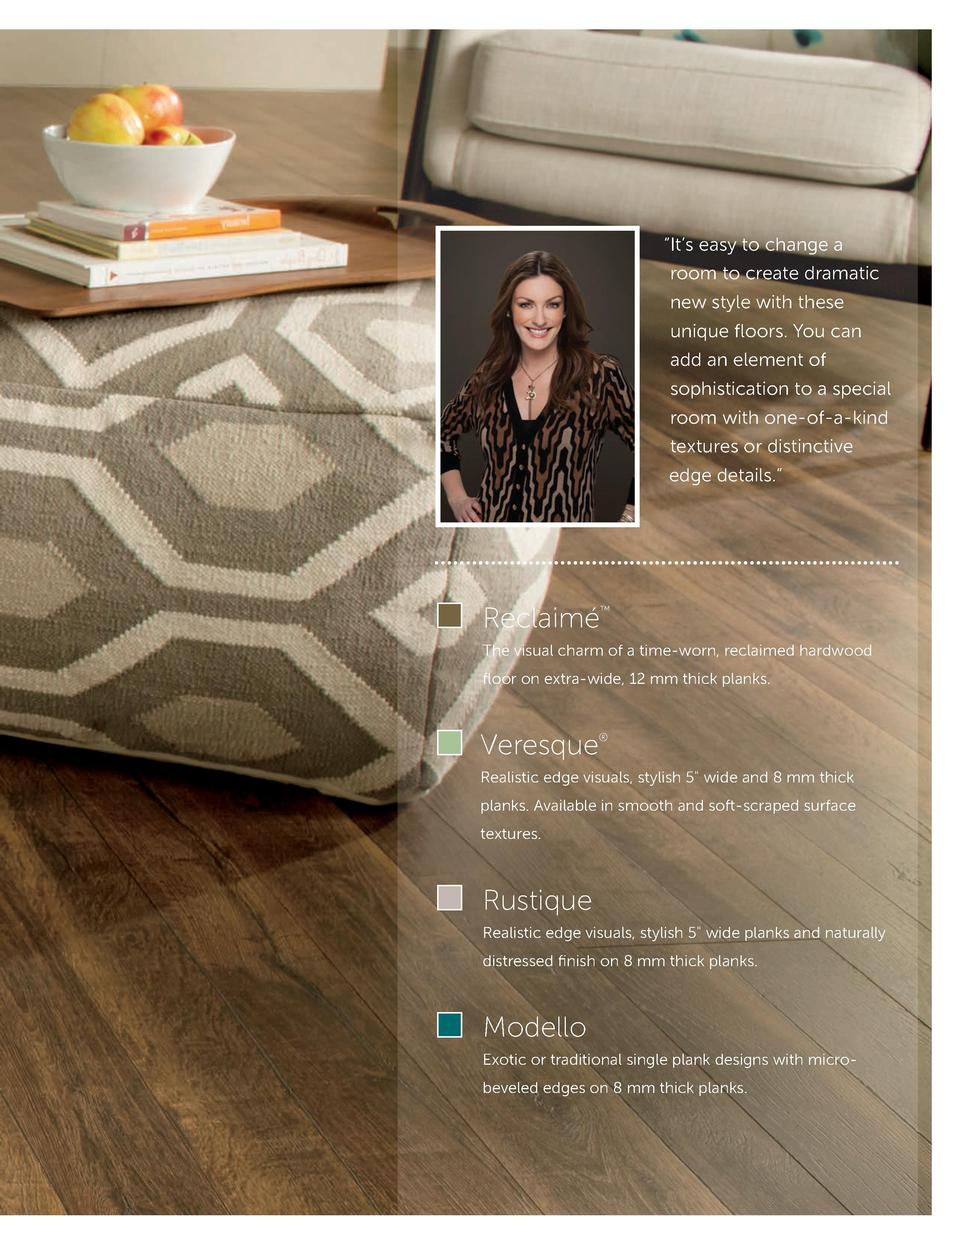 It   s easy to change a room to create dramatic new style with these unique floors . You can add an element of sophisti...